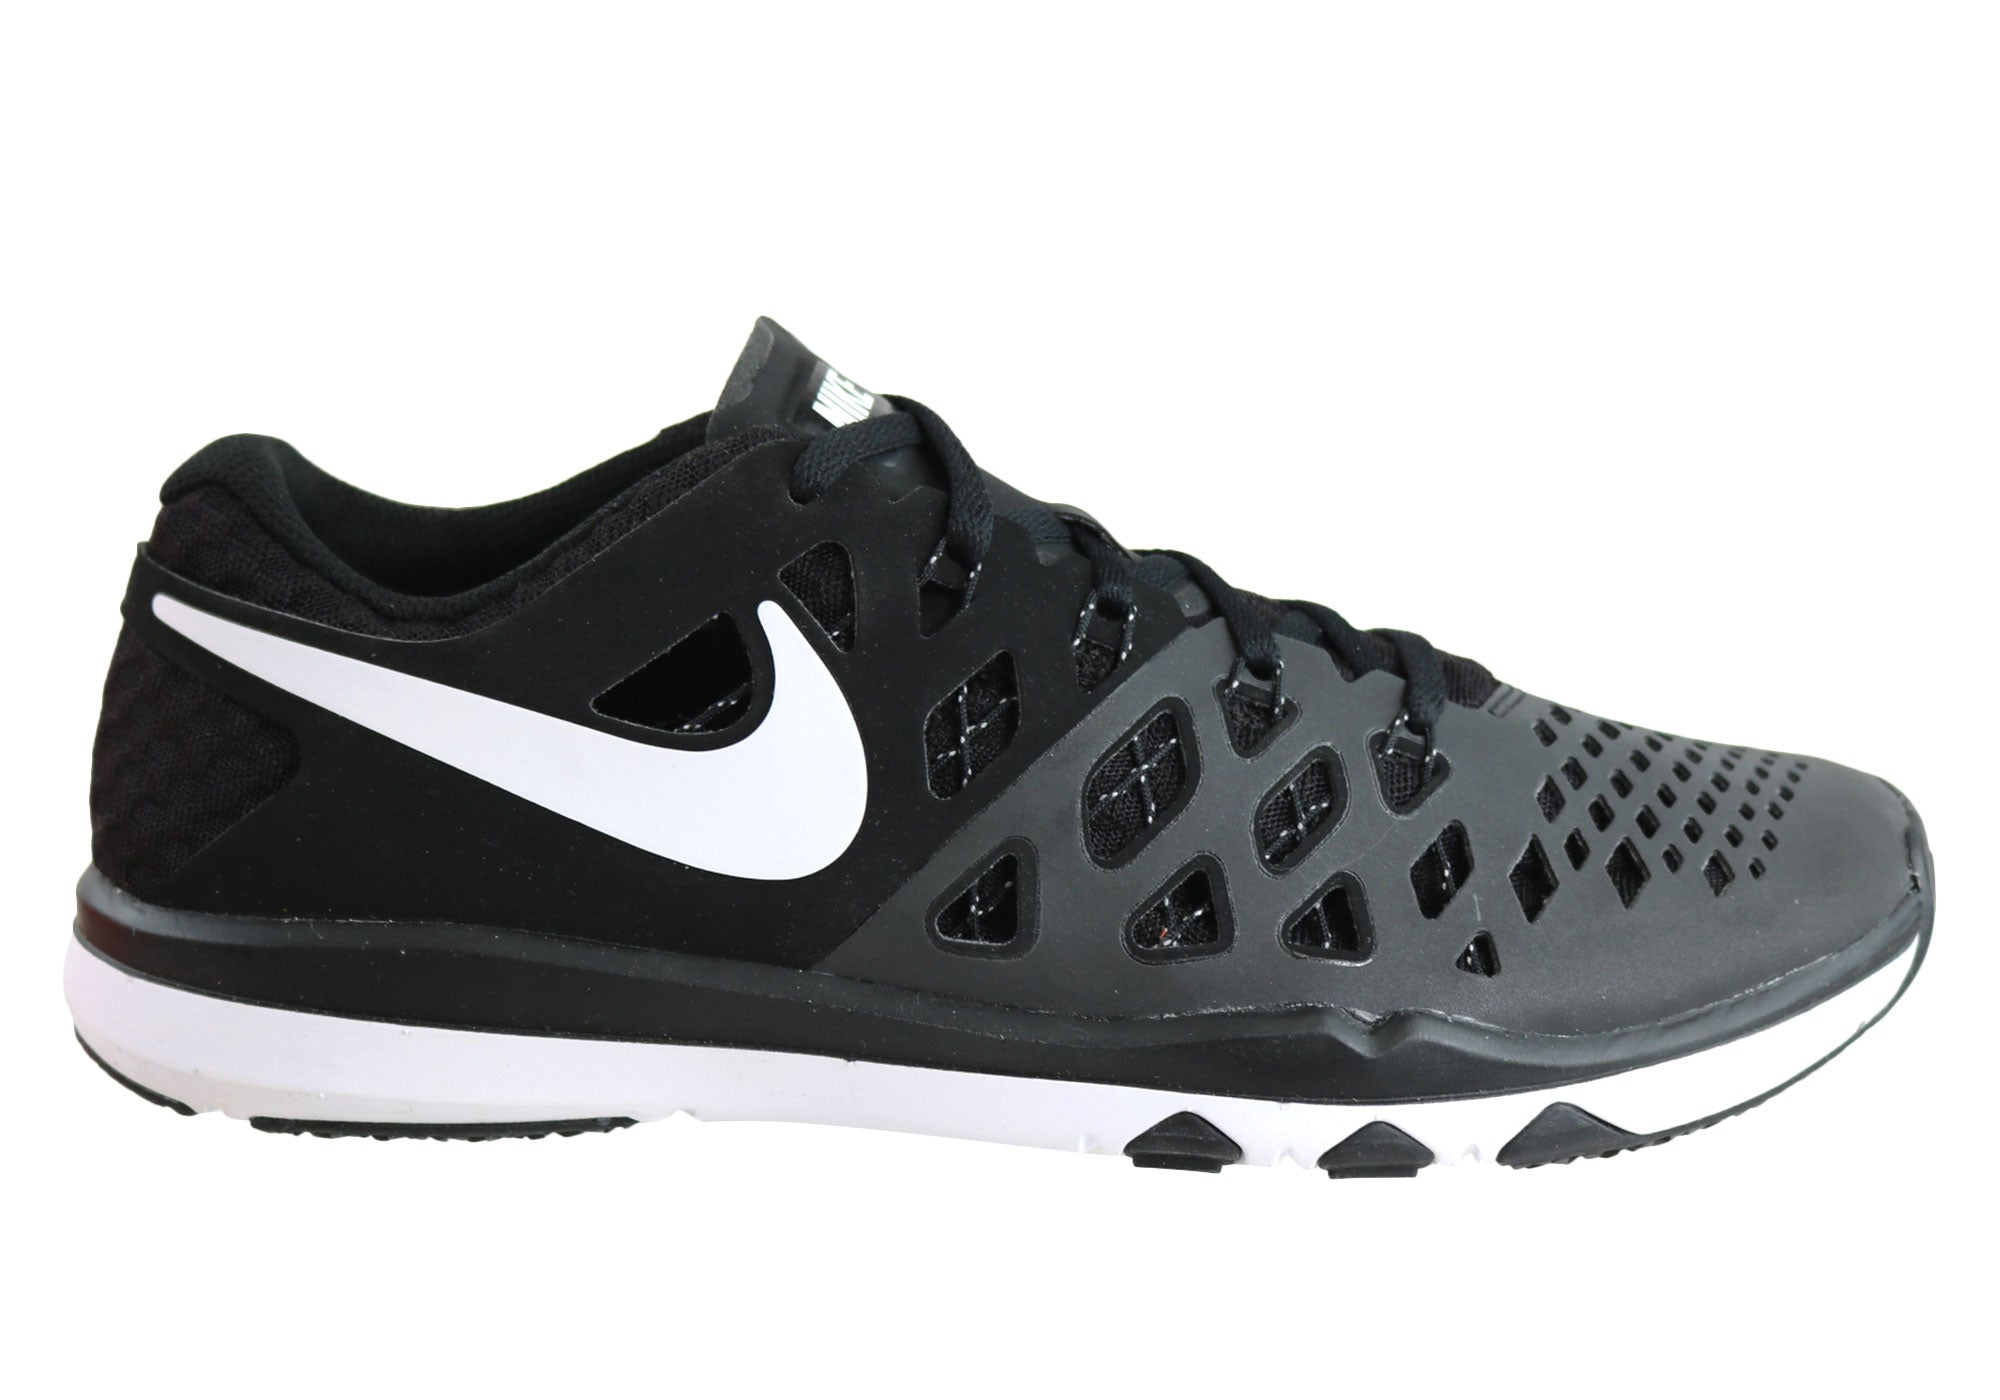 dffc89ed232f Home Nike Train Speed 4 TB Mens Crossing Trainers Sport Shoes. Black White  ...